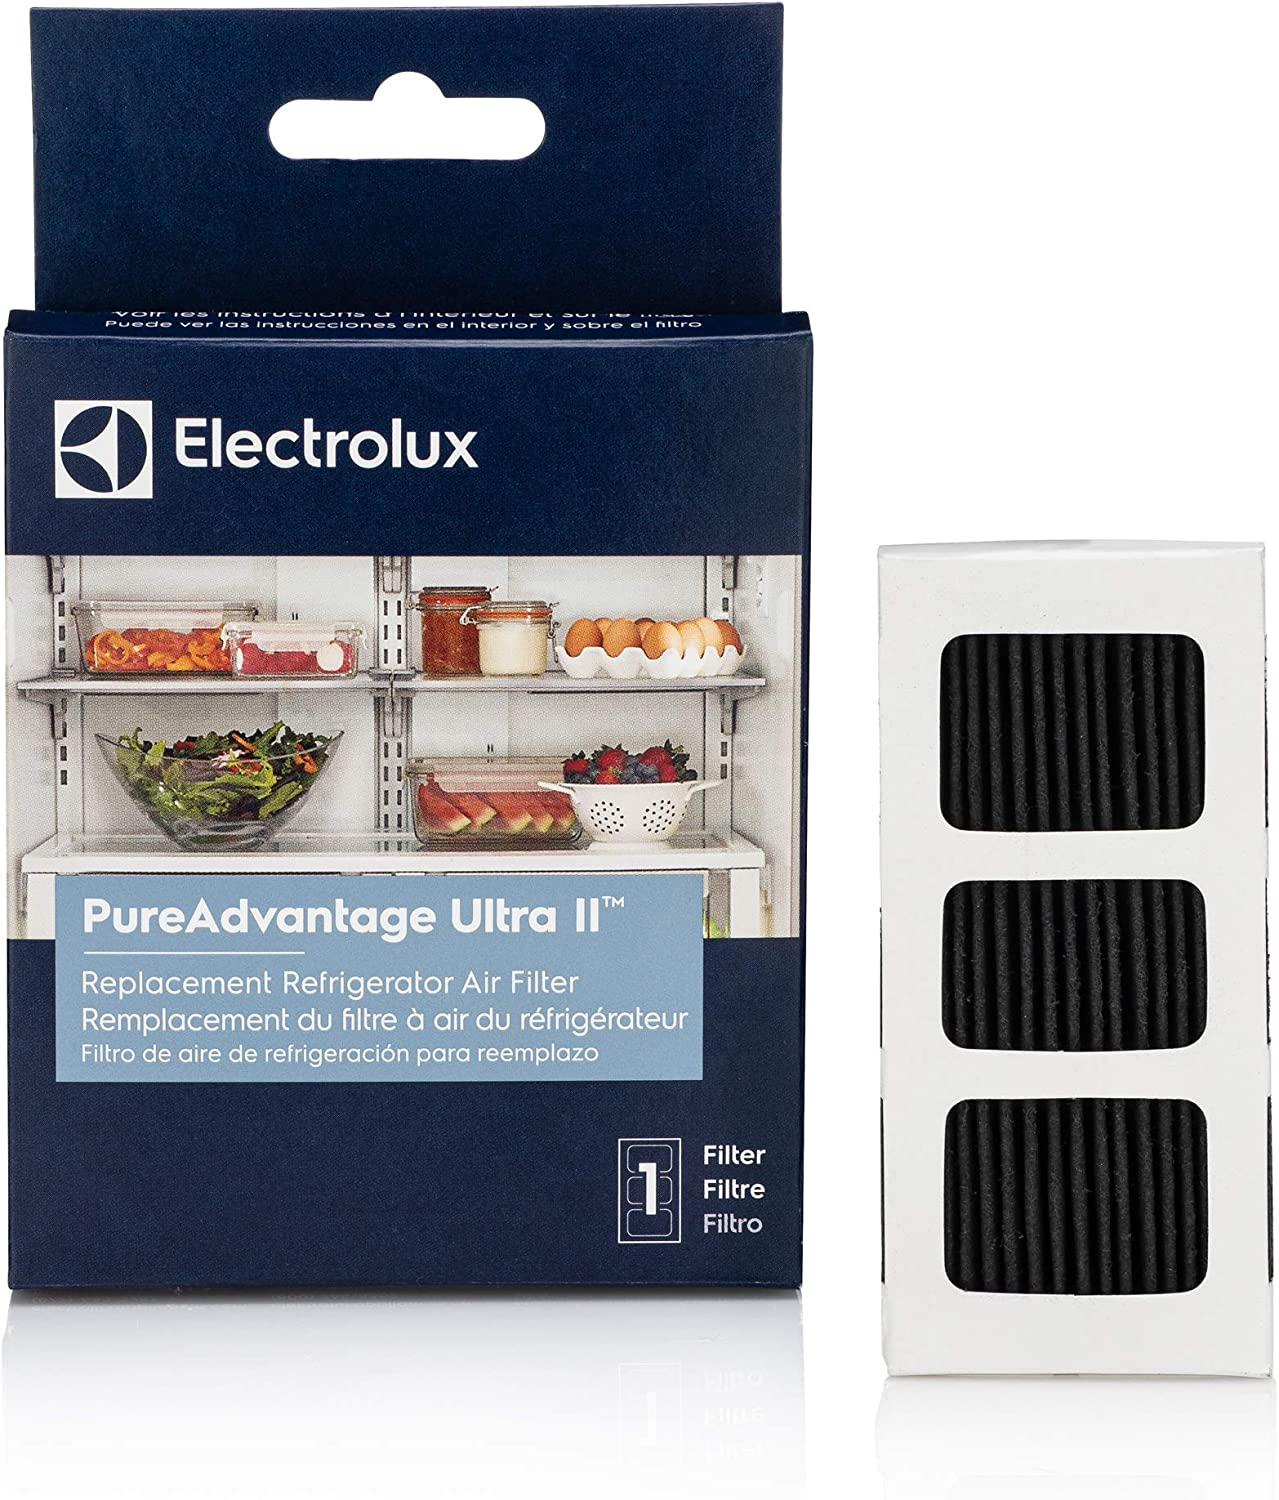 Electrolux ELPAULTRA2 PureAdvantage ULTRA II Refrigerator Air Filter, One Size, Black